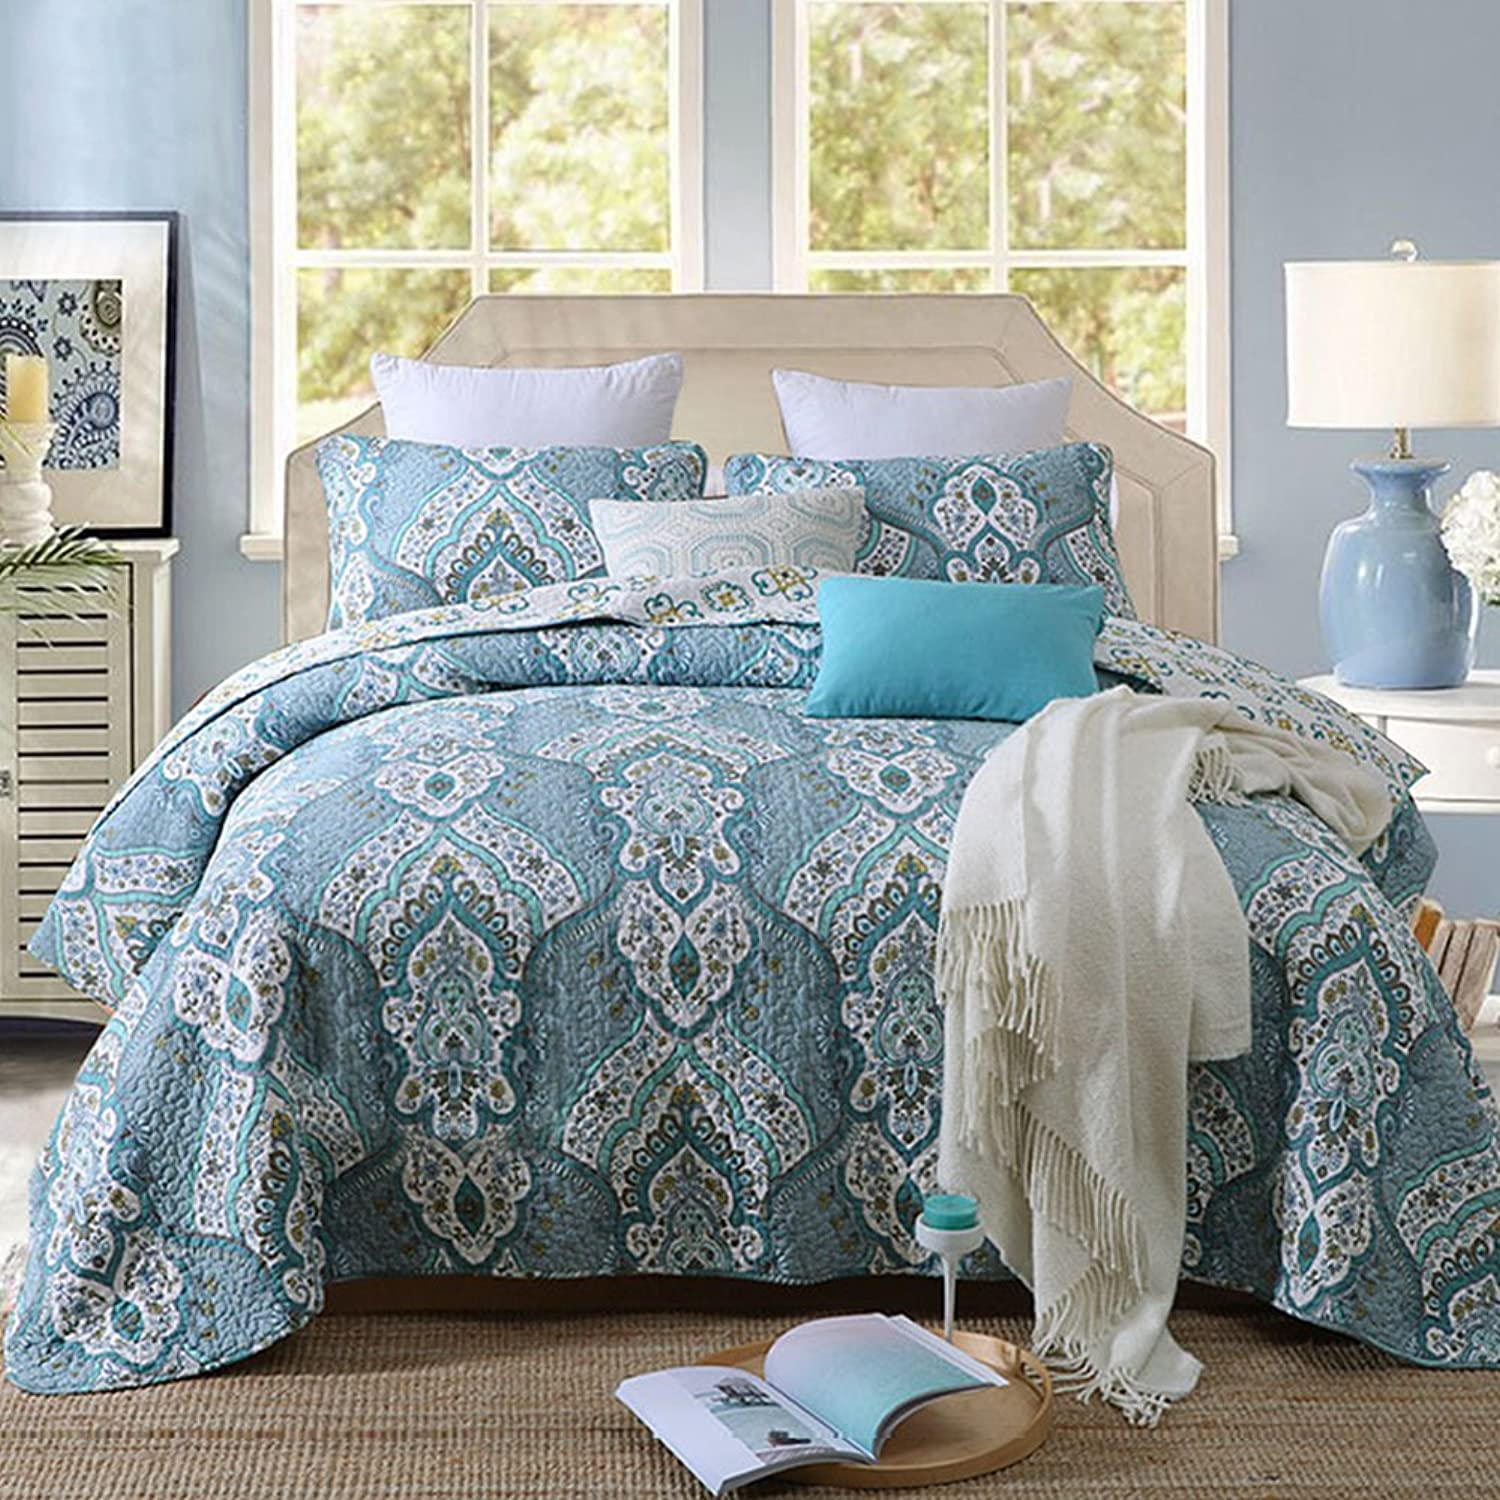 Gravan 3-Piece Queen Quilt Sets with Shams Oversized Bedding Bedspread Coverlet Set, Classical Paisley Printed